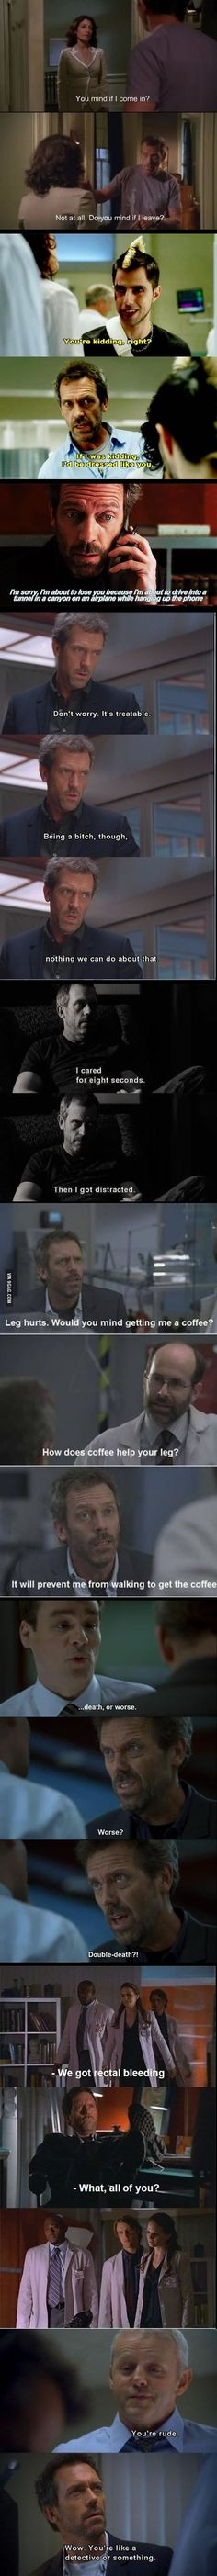 Paging Dr. House.